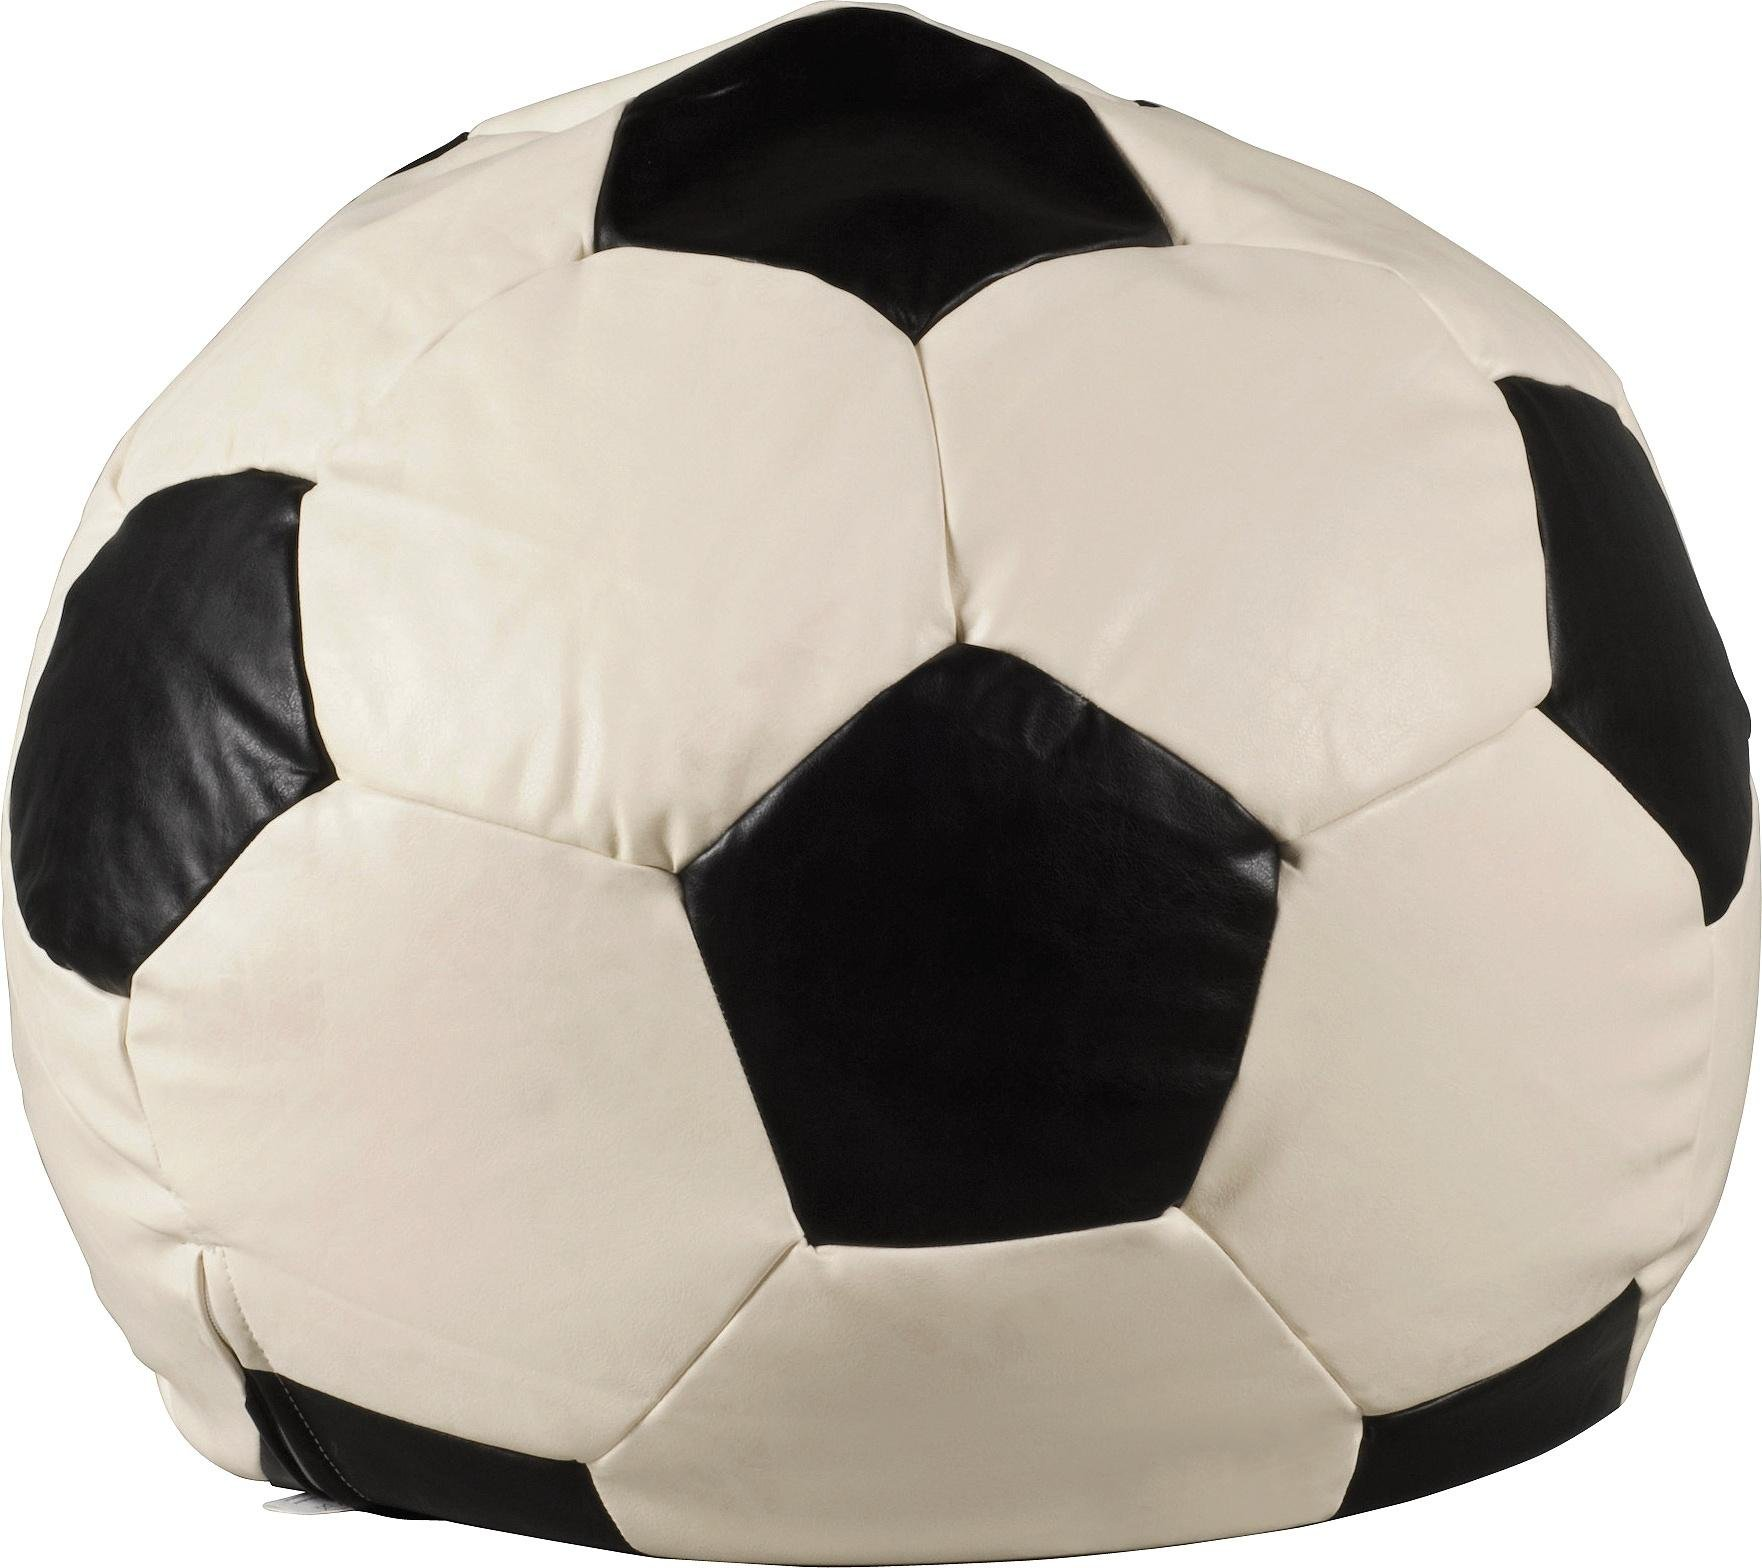 HOME XL Leather Effect Football Beanbag - Black & White